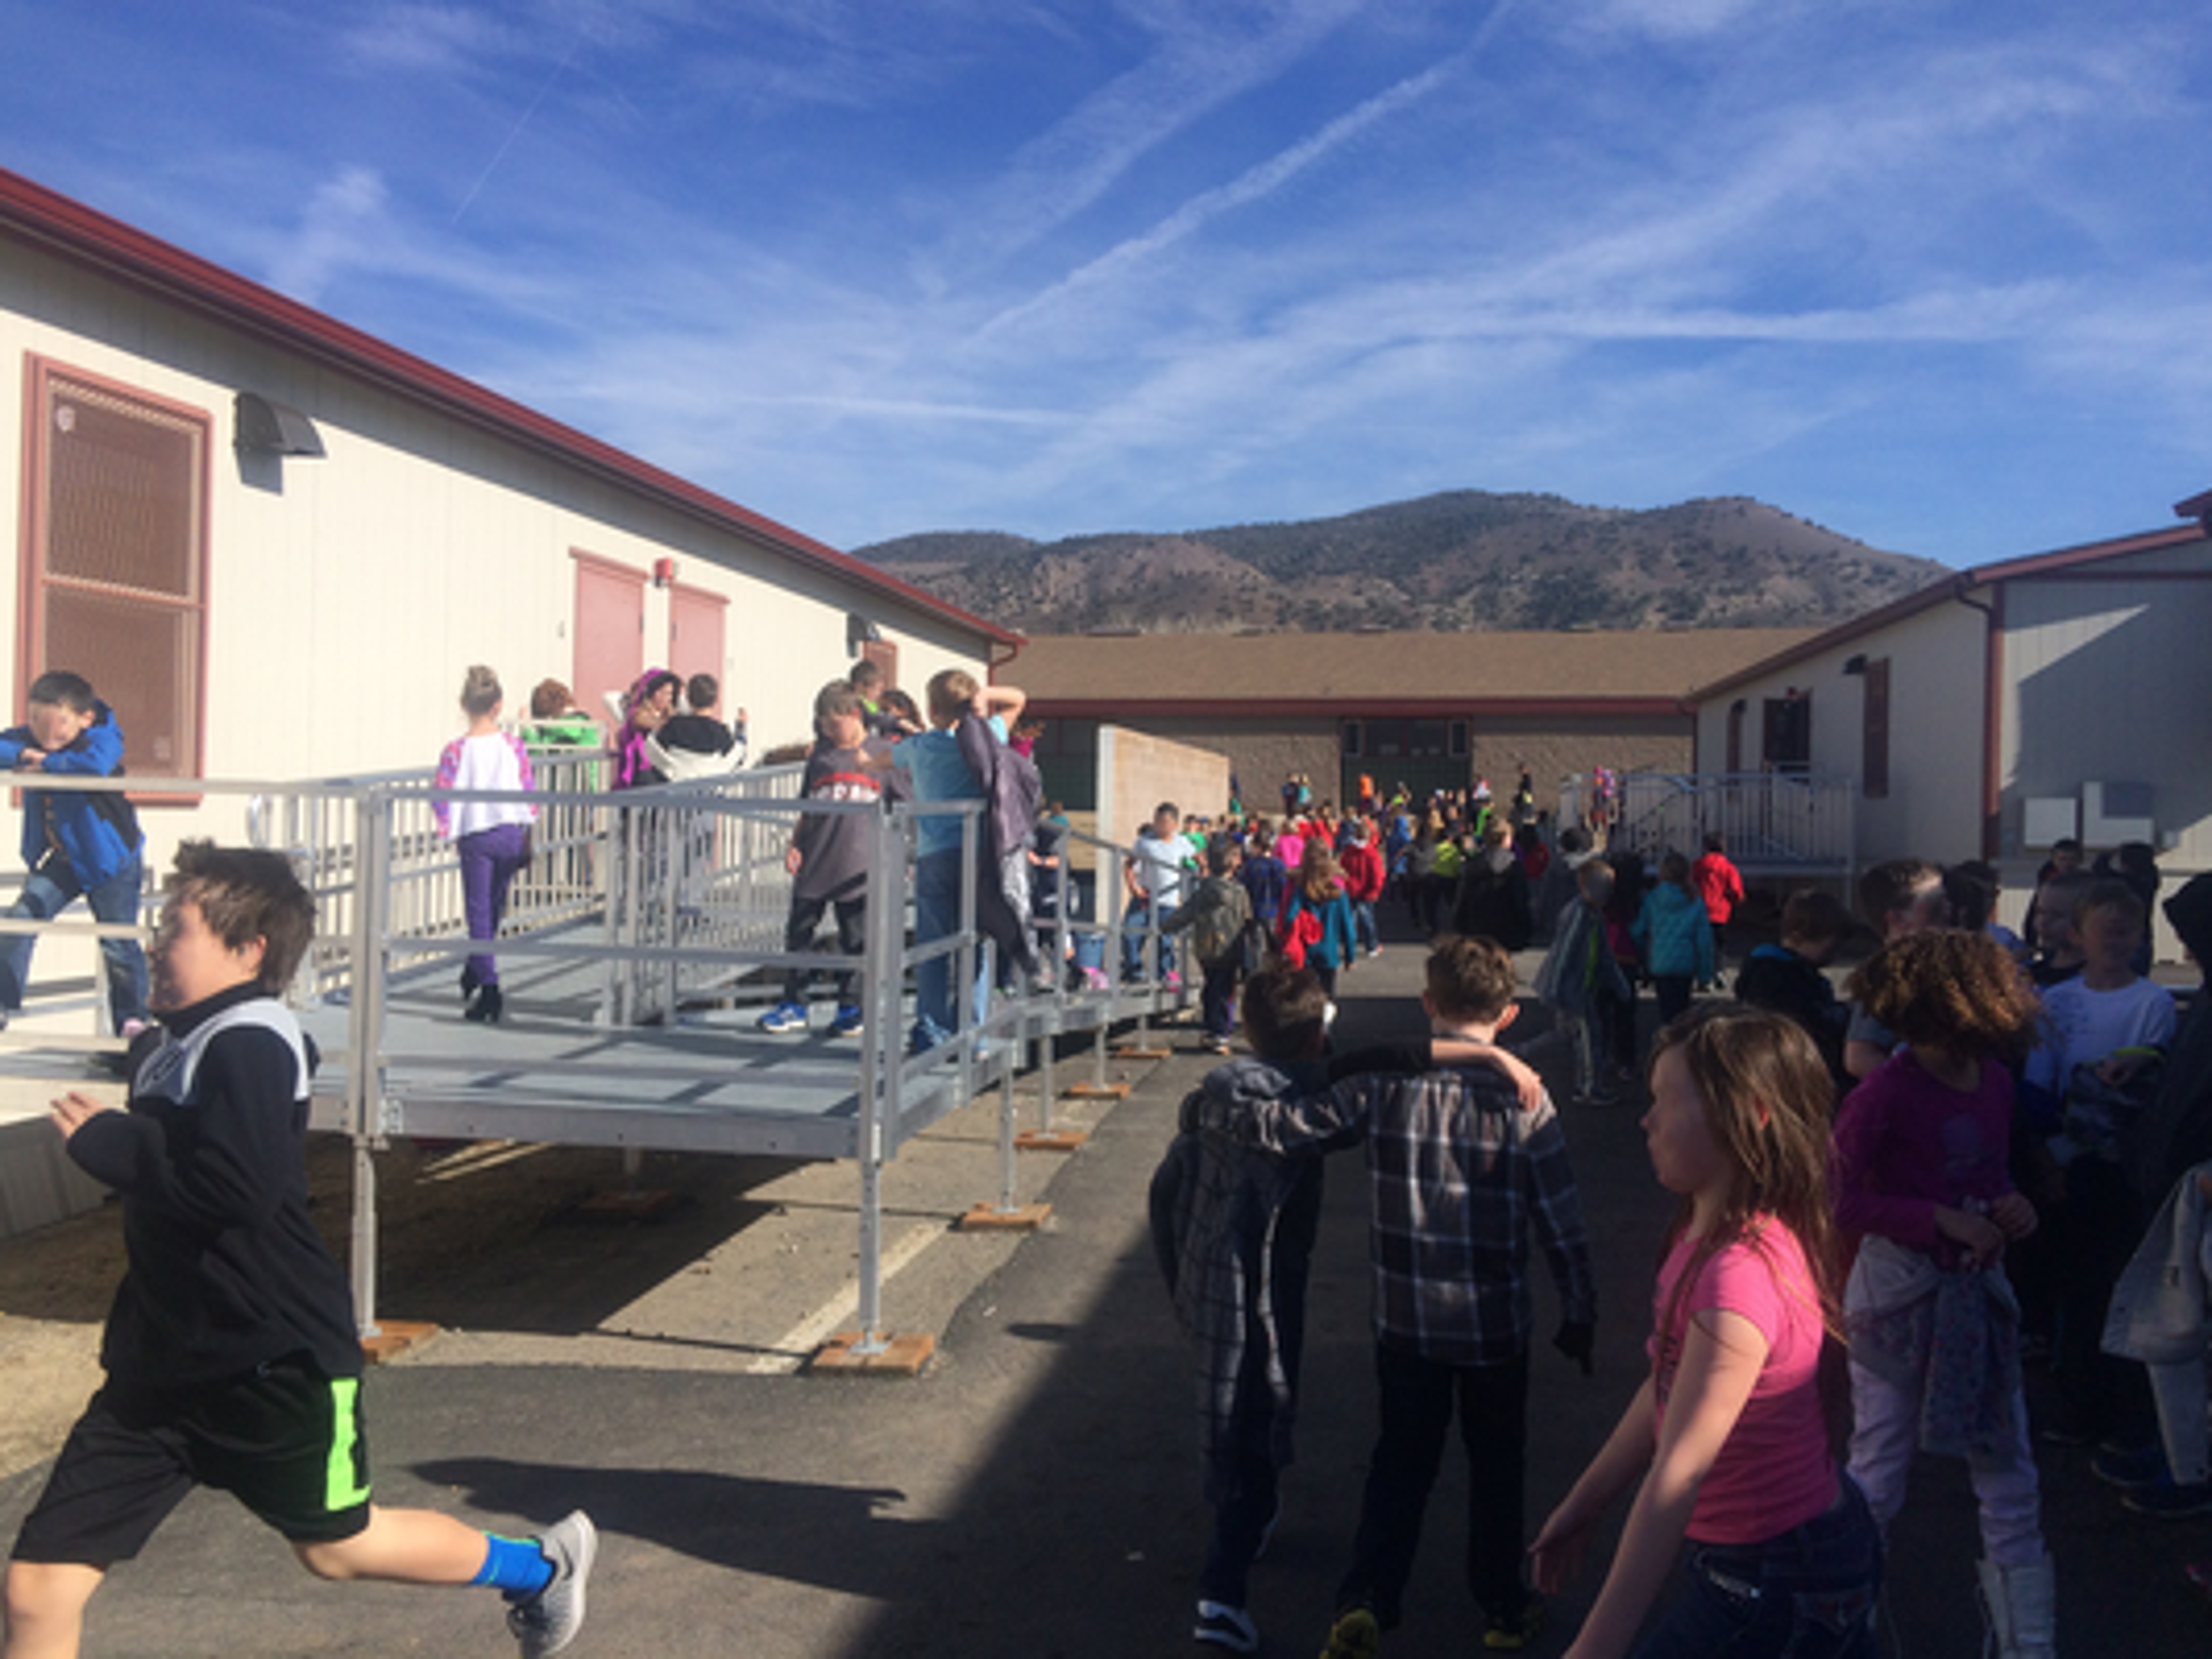 Brown Elementary School has 10 portable classrooms.